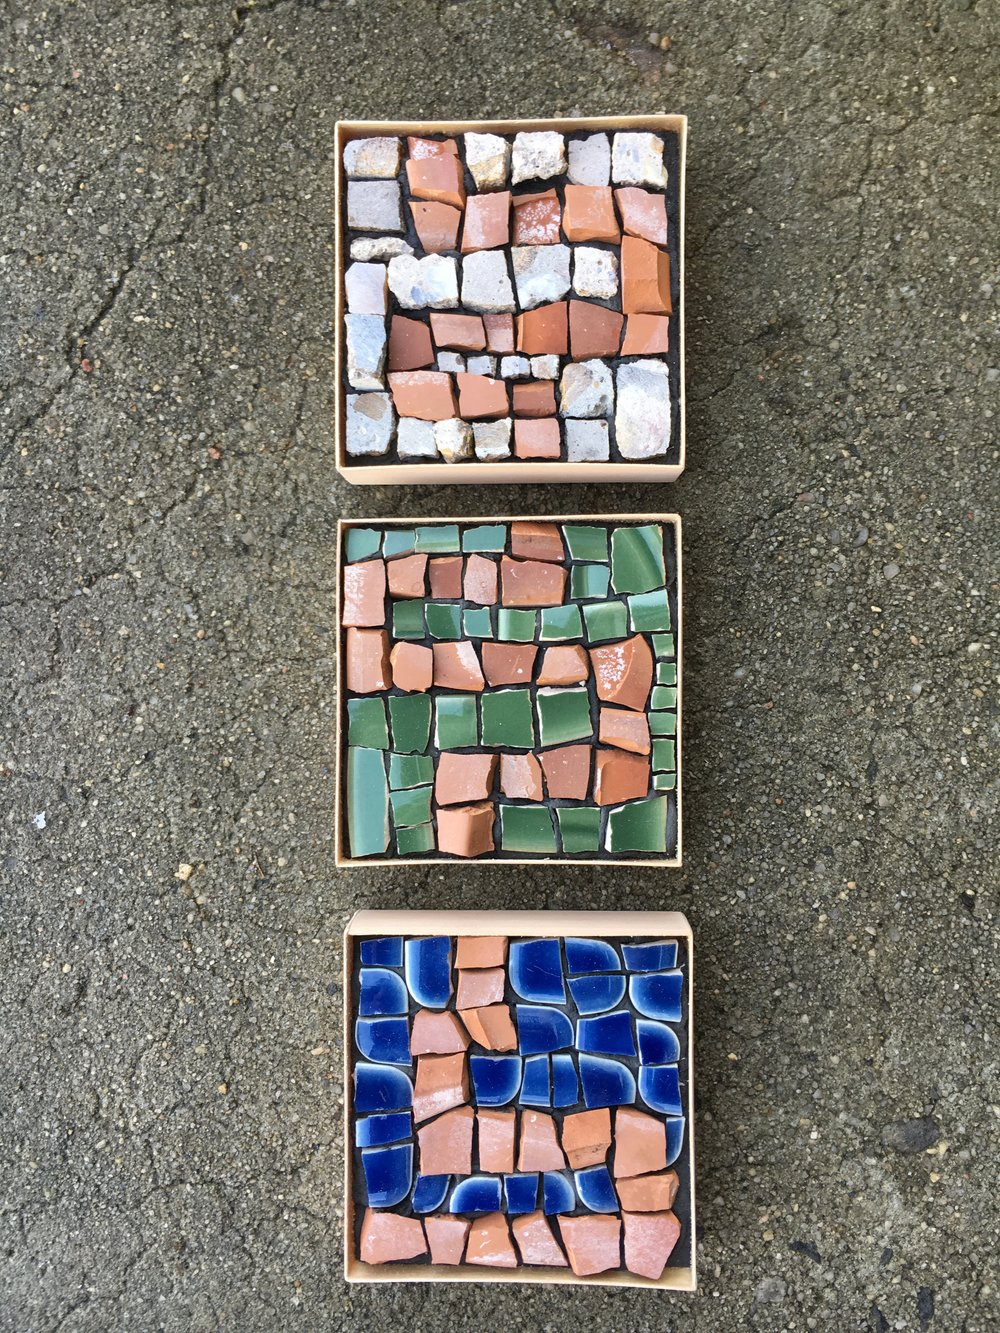 Terracotta mosaic series I